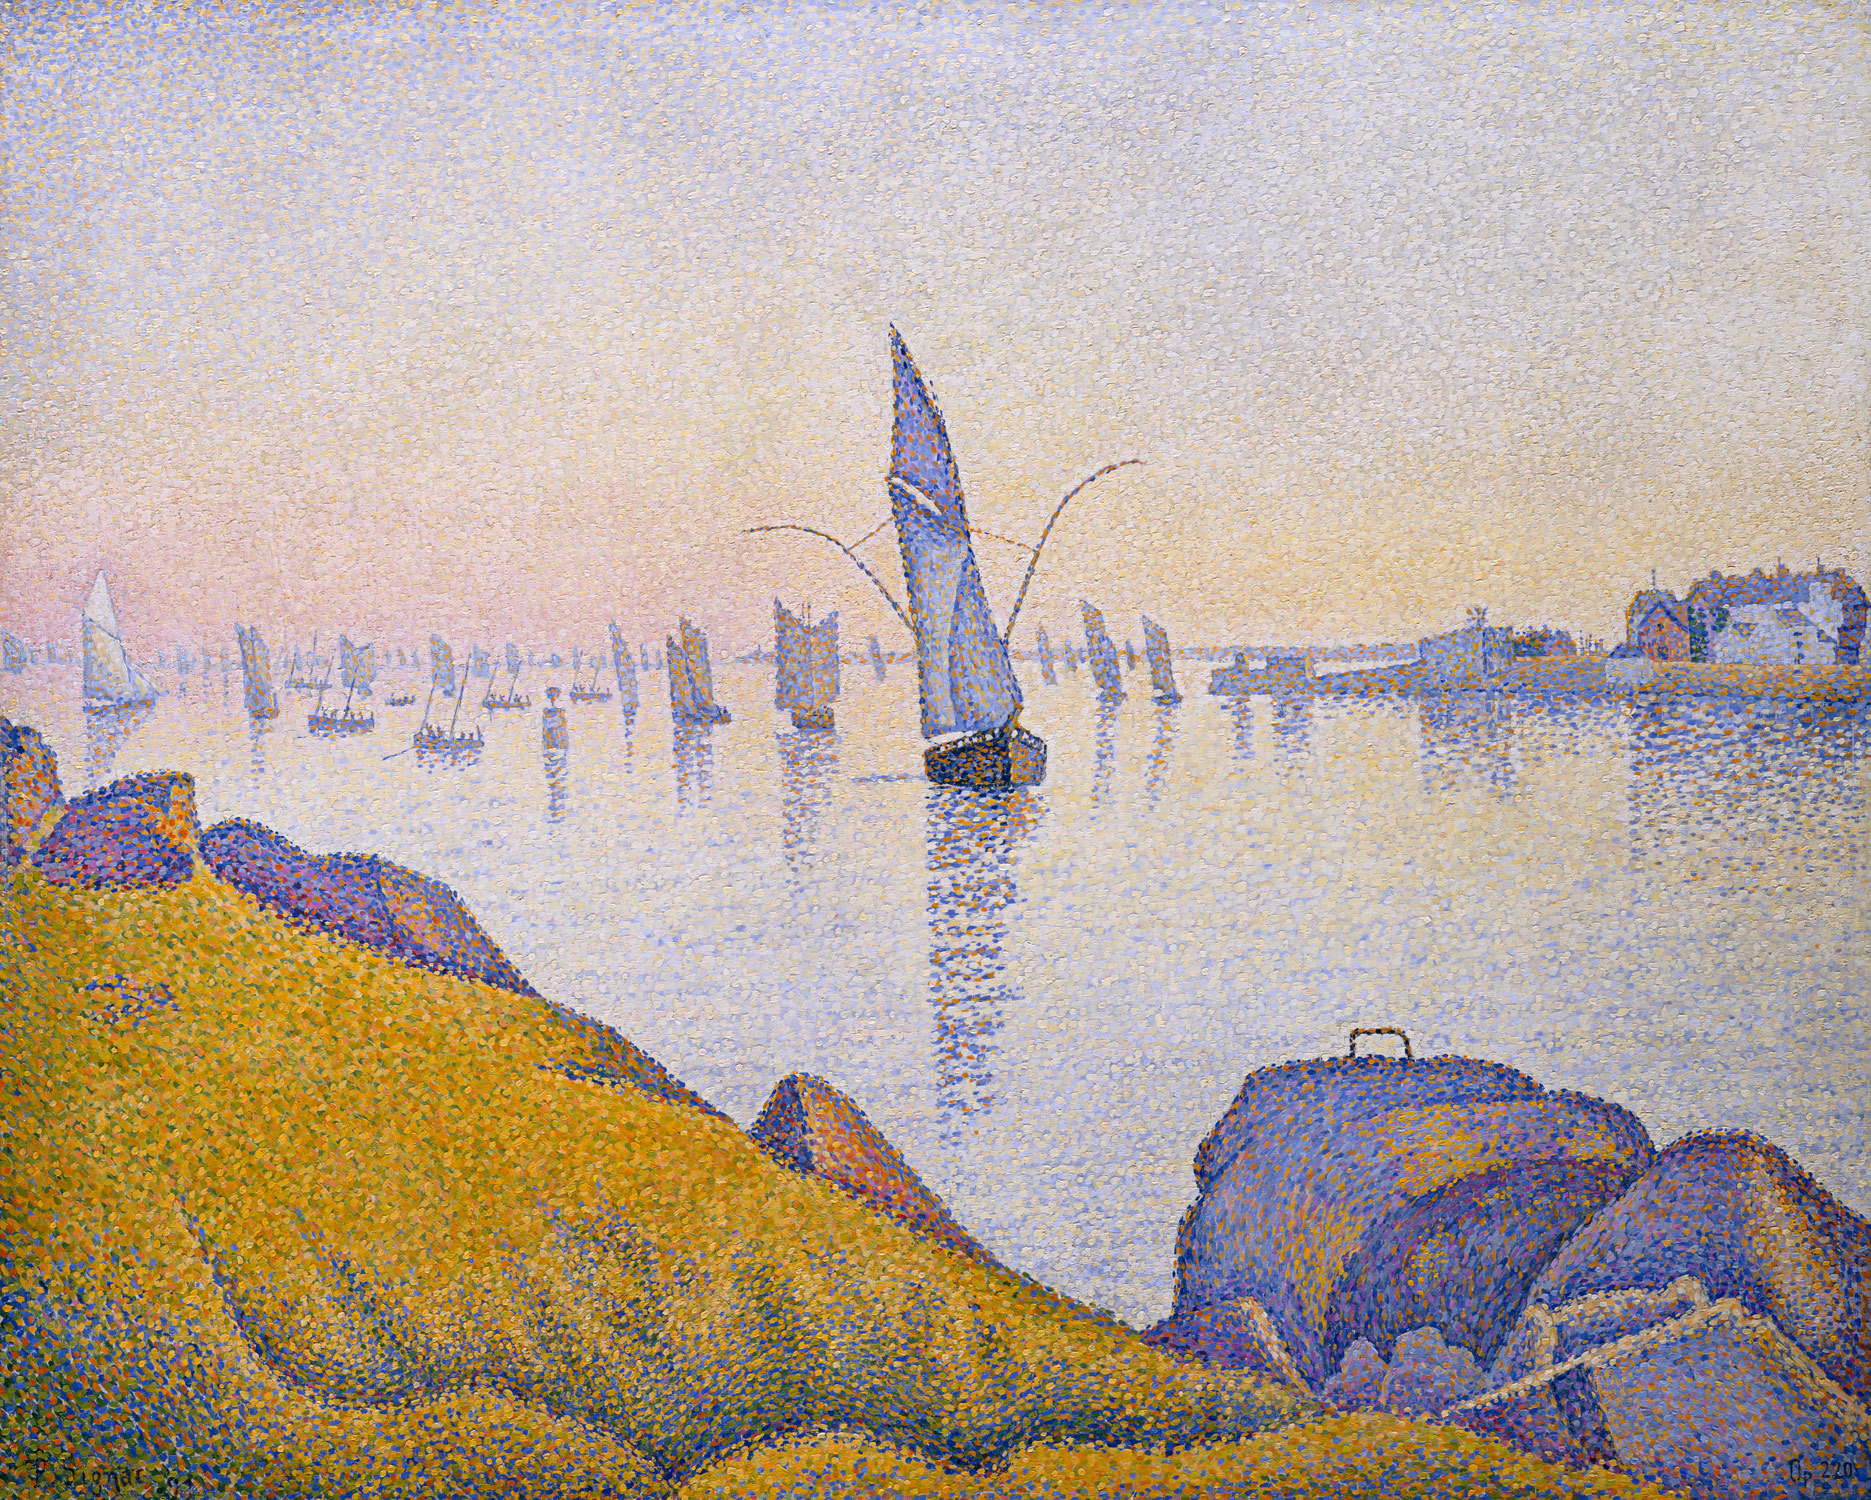 georges seurat and neo impressionism essay evening calm concarneau opus 220 allegro maestoso